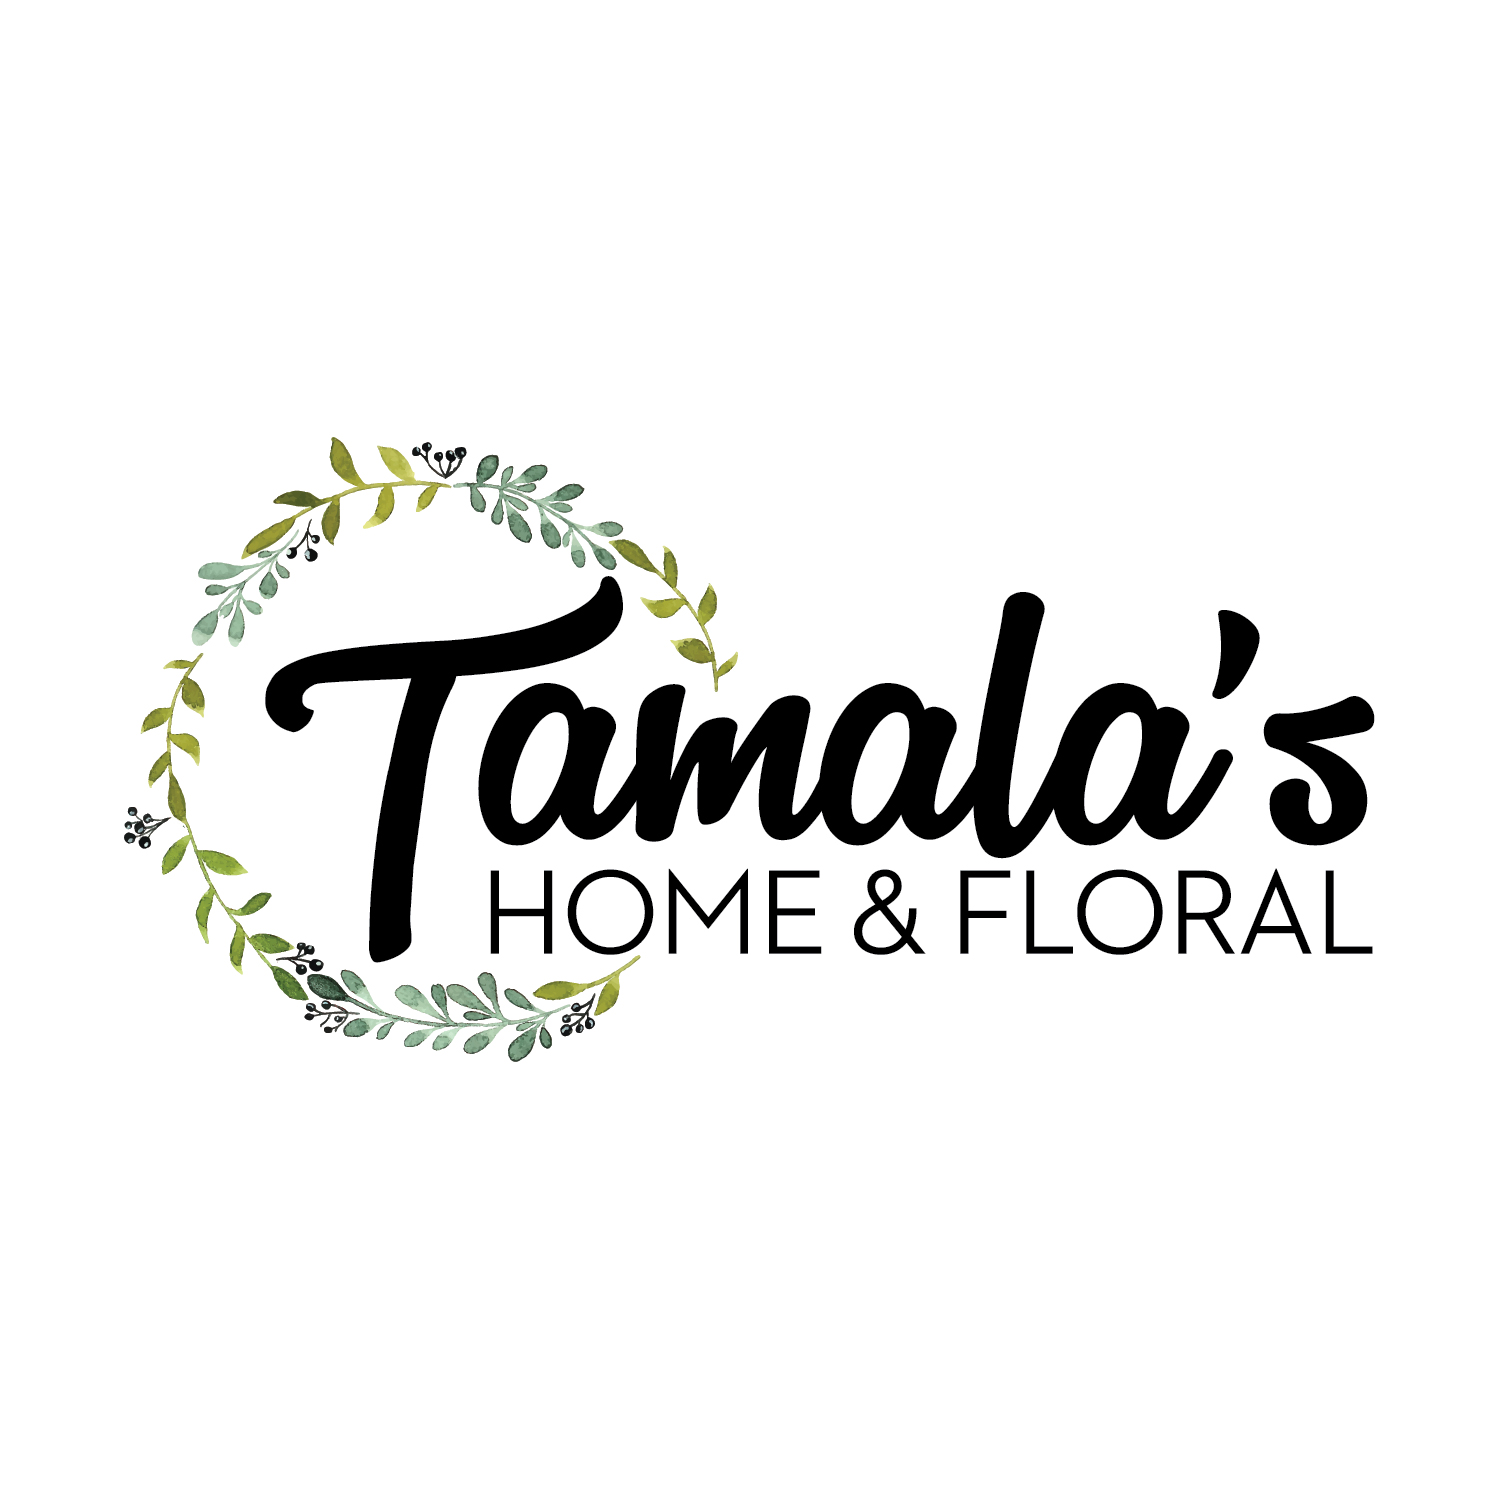 Tamalas Home and Floral primary image